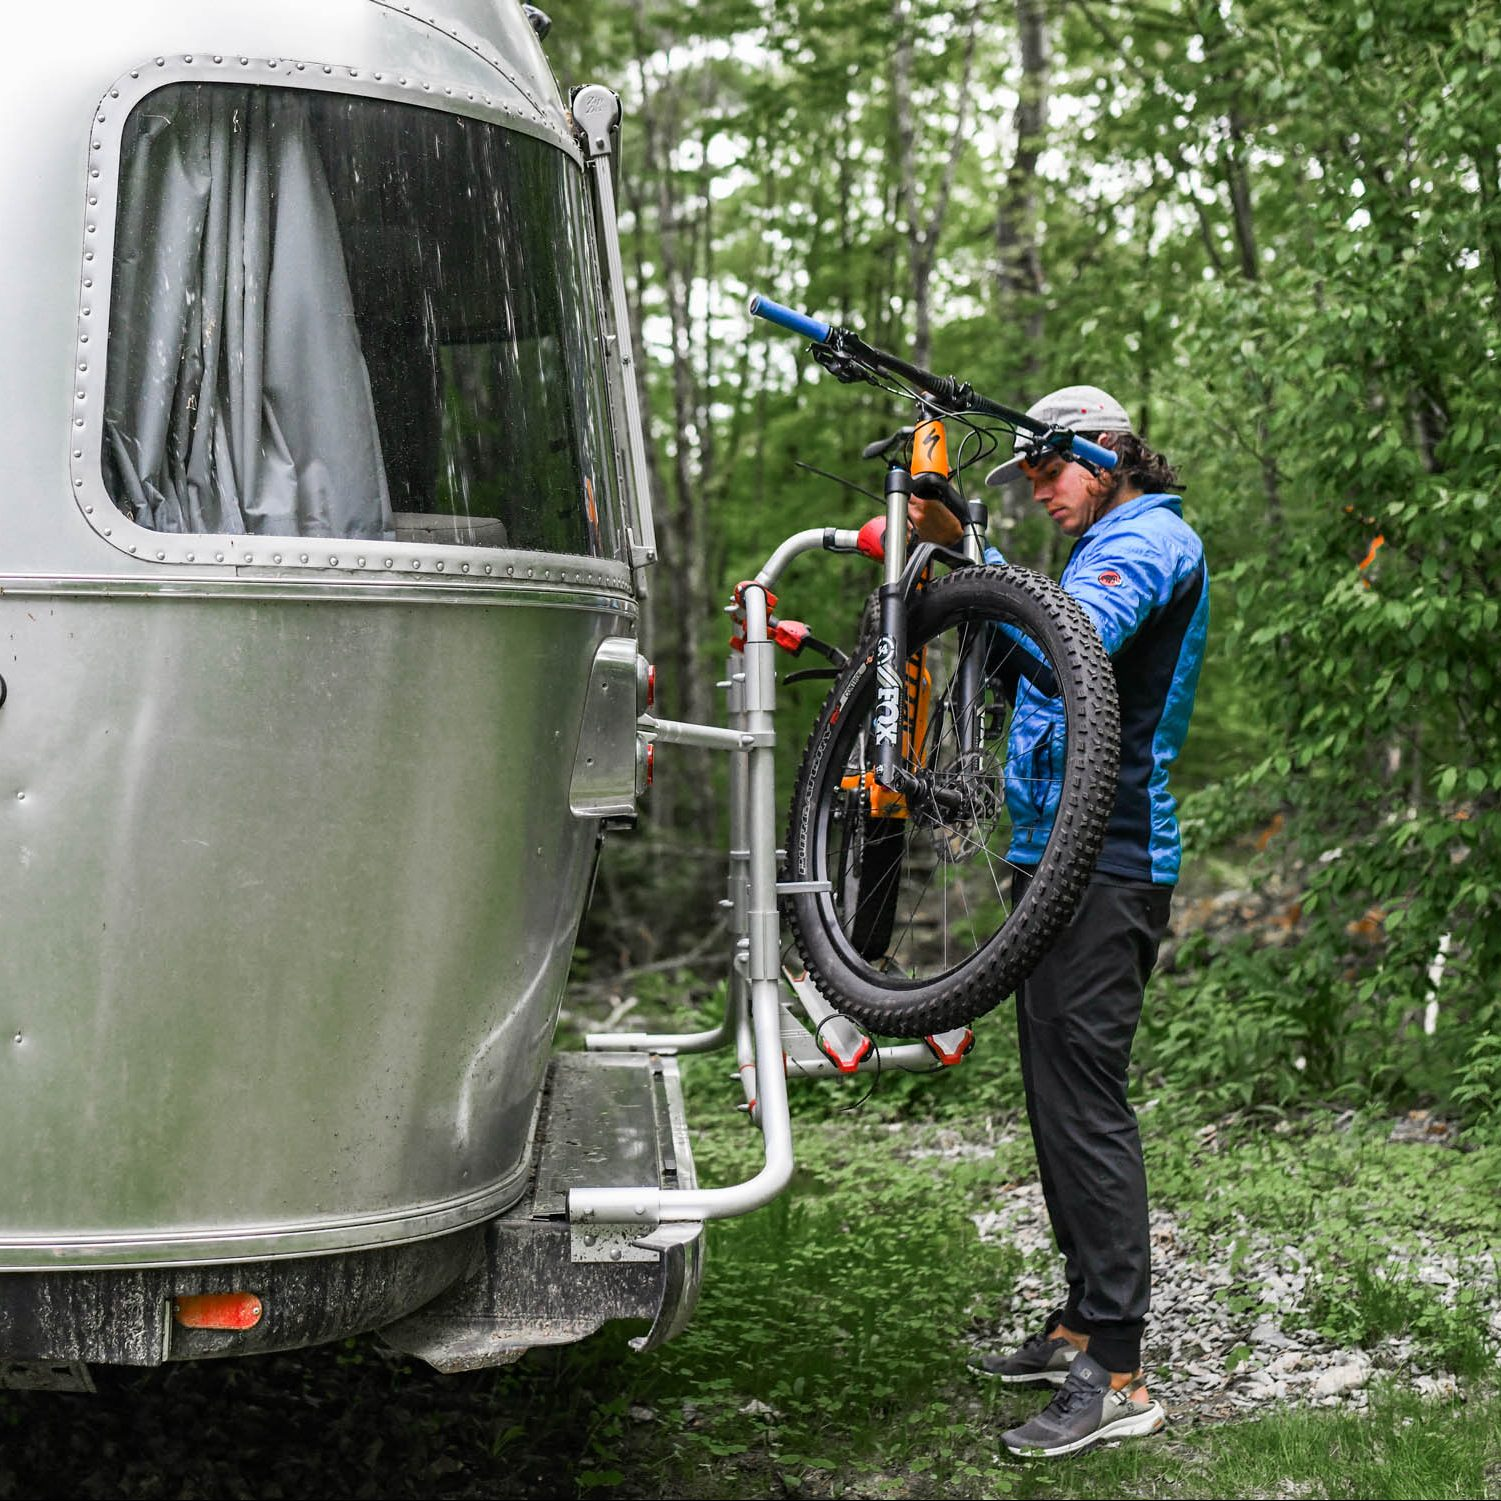 ZOOMZOOMCREATIVECO_AIRSTREAM_ASCPRODUCTSROUND1_SPRINGSUMMER2019-64